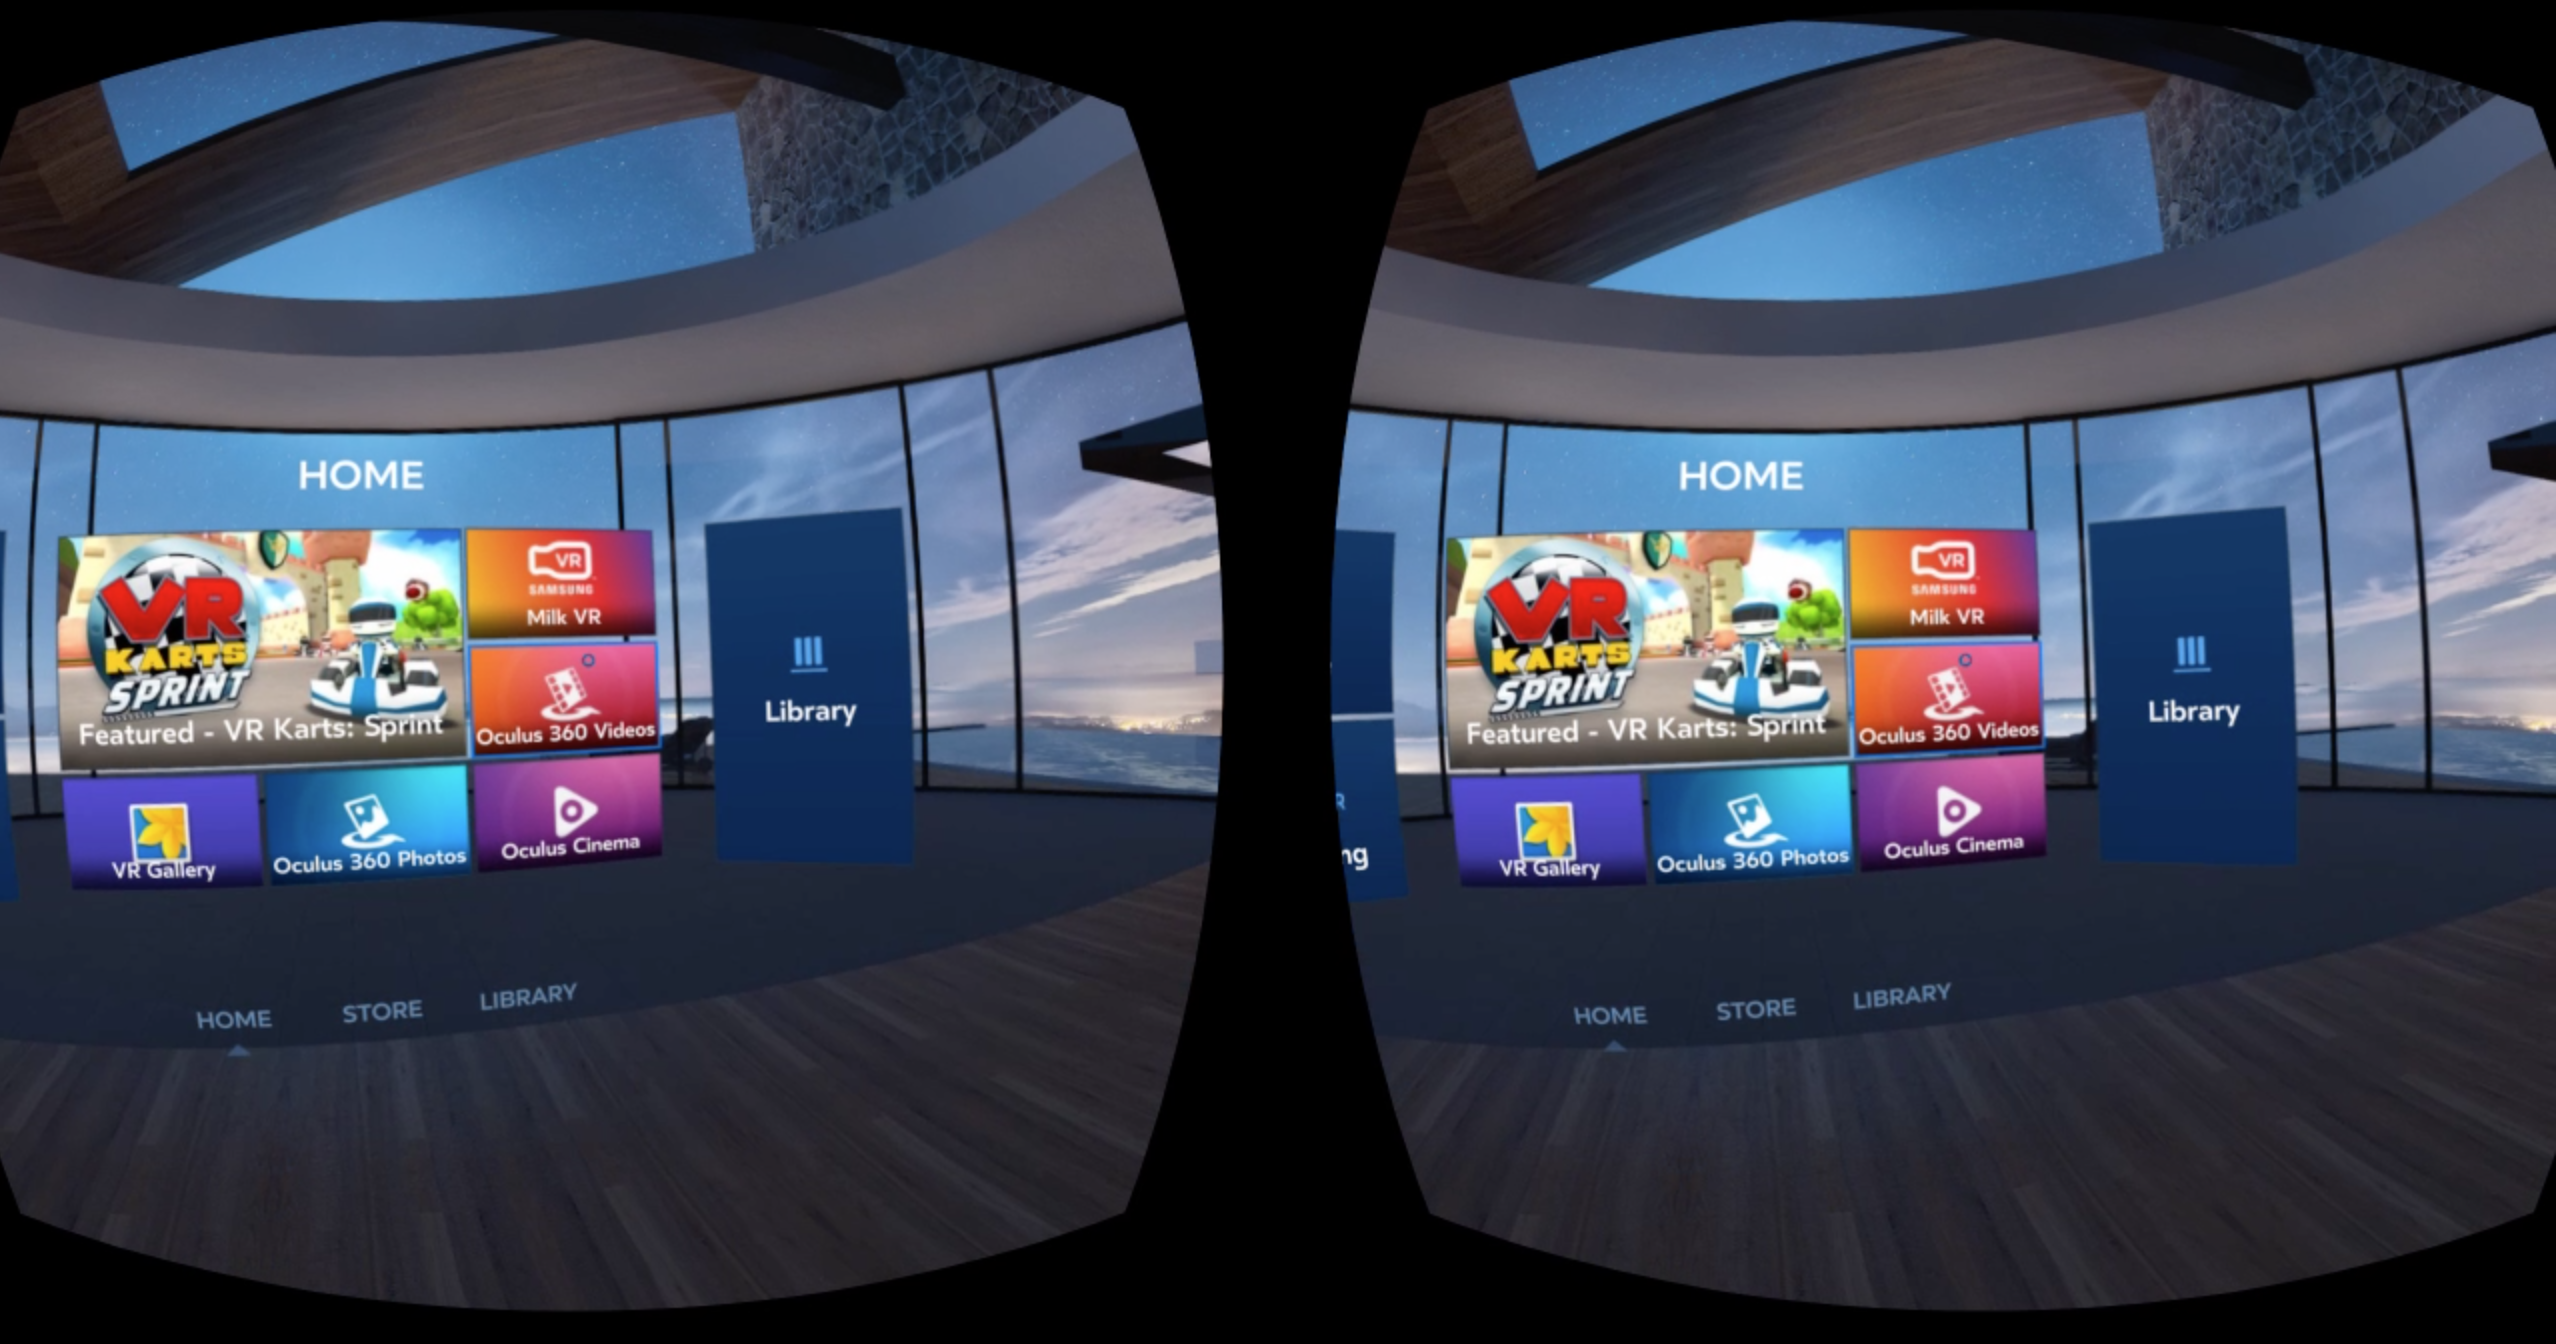 How To Watch Downloaded 360 Degree Videos On Samsung Gear Vr